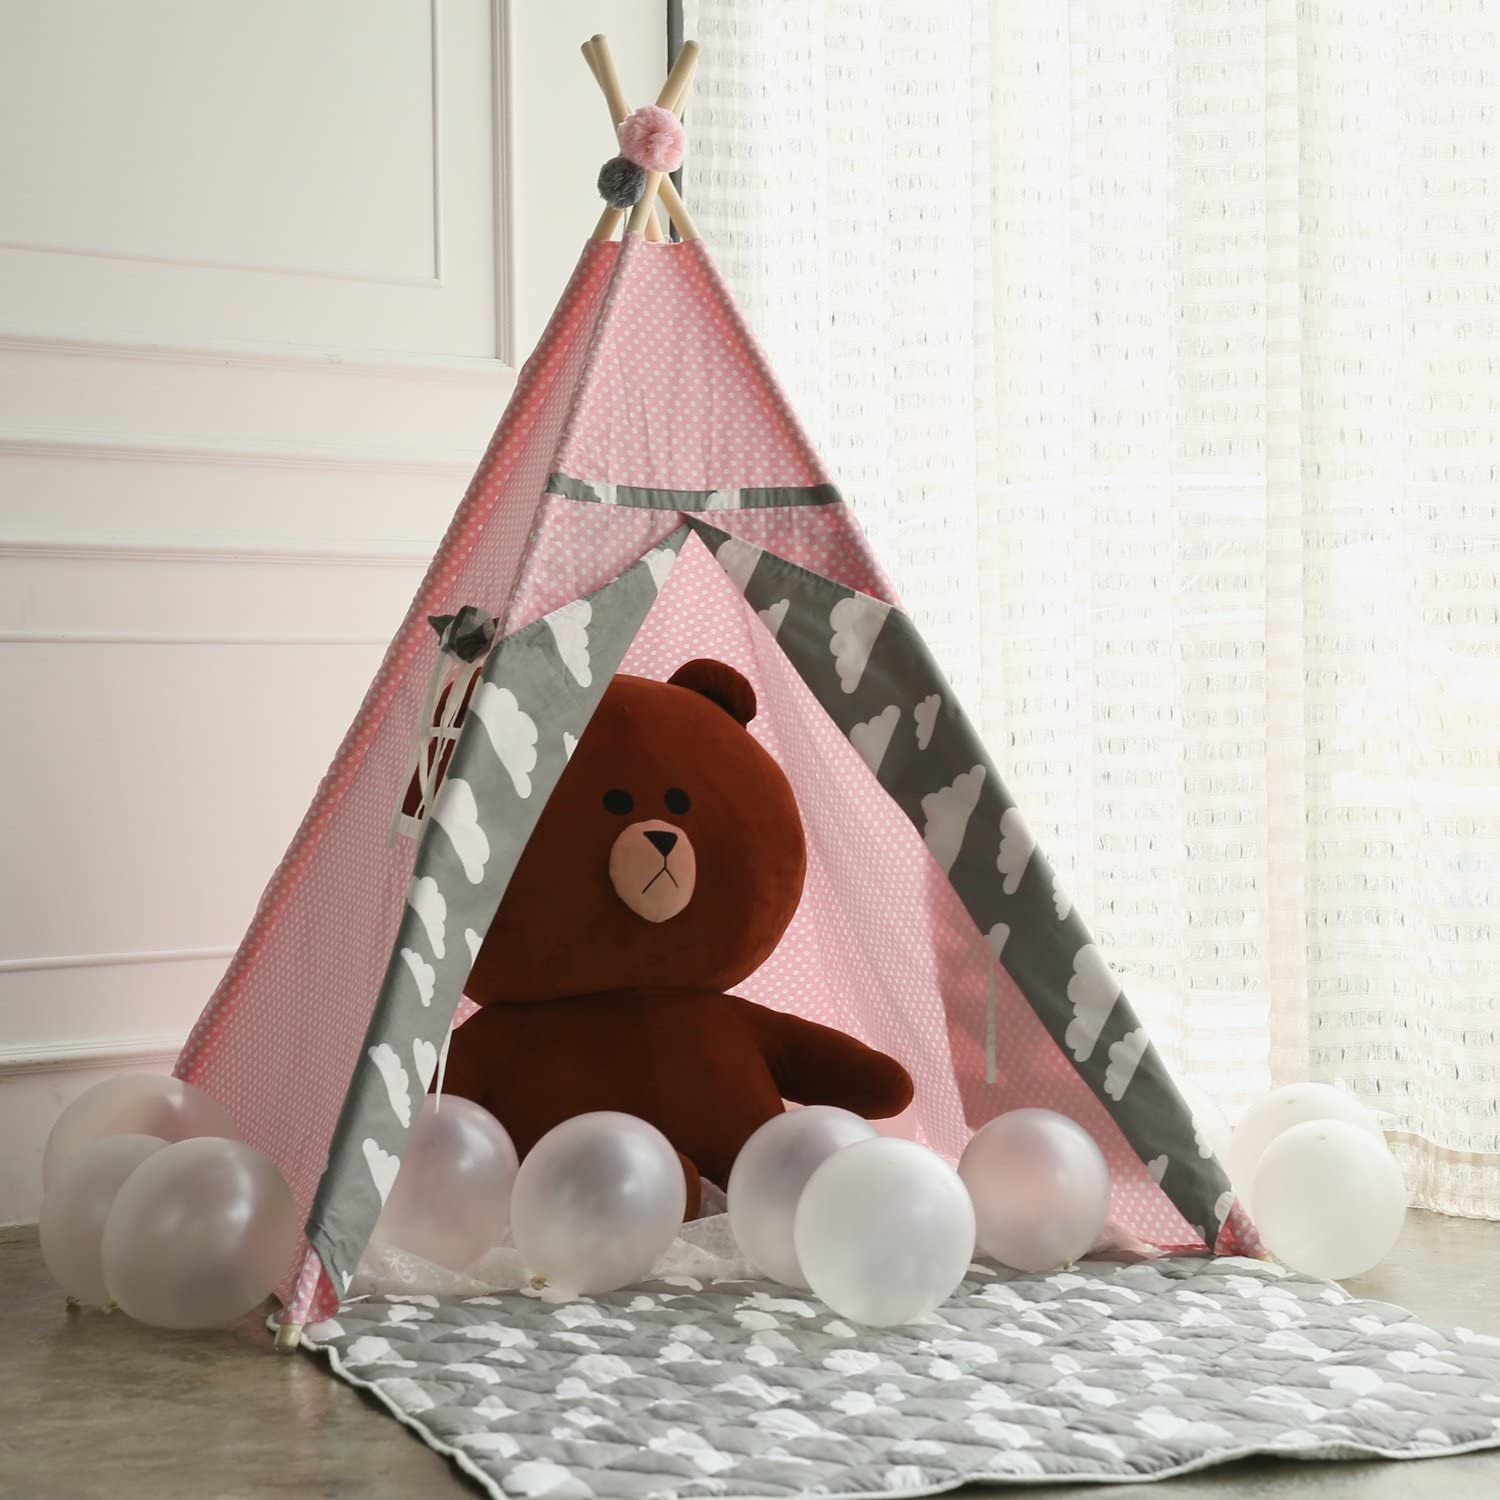 Princess Teepee Fairy Tent  5' Large Handcraft Pink Cotton Canvas Play Tent Kids Playhouse by Wonder Space, Comes with Free Hang Decorations, Best Gift Indoor & Outdoor Present for Girls